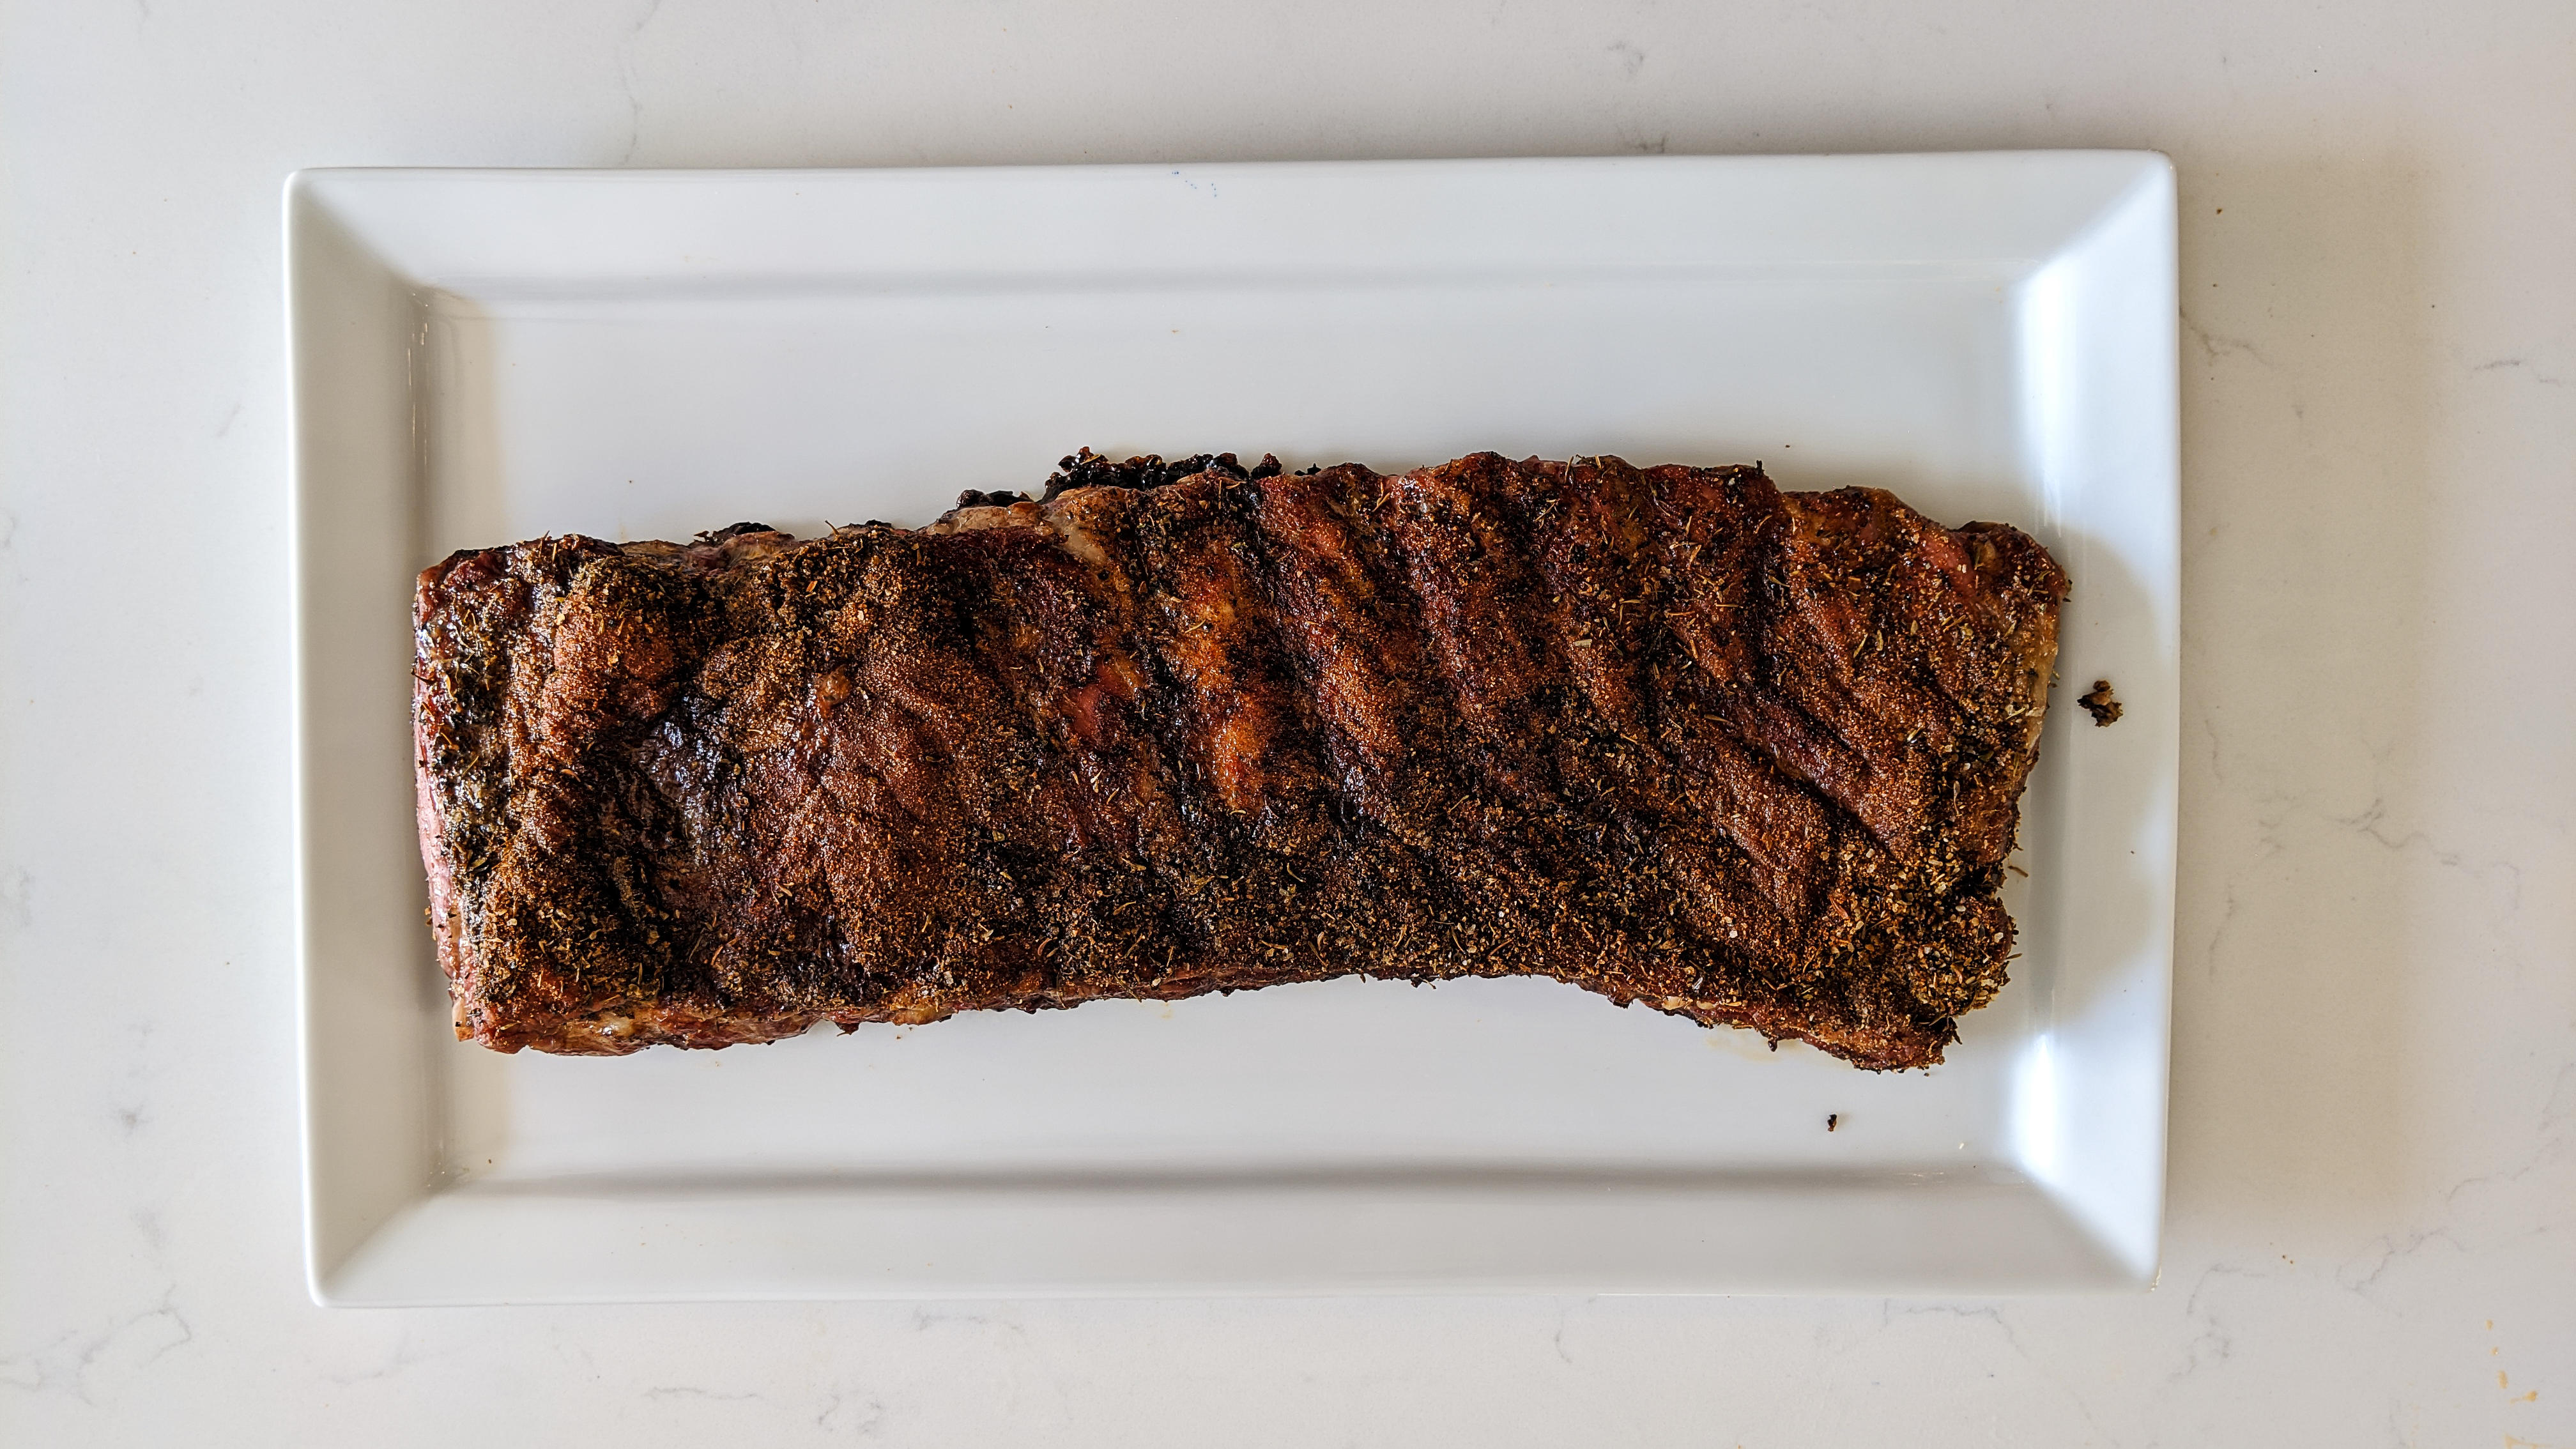 How we test ribs